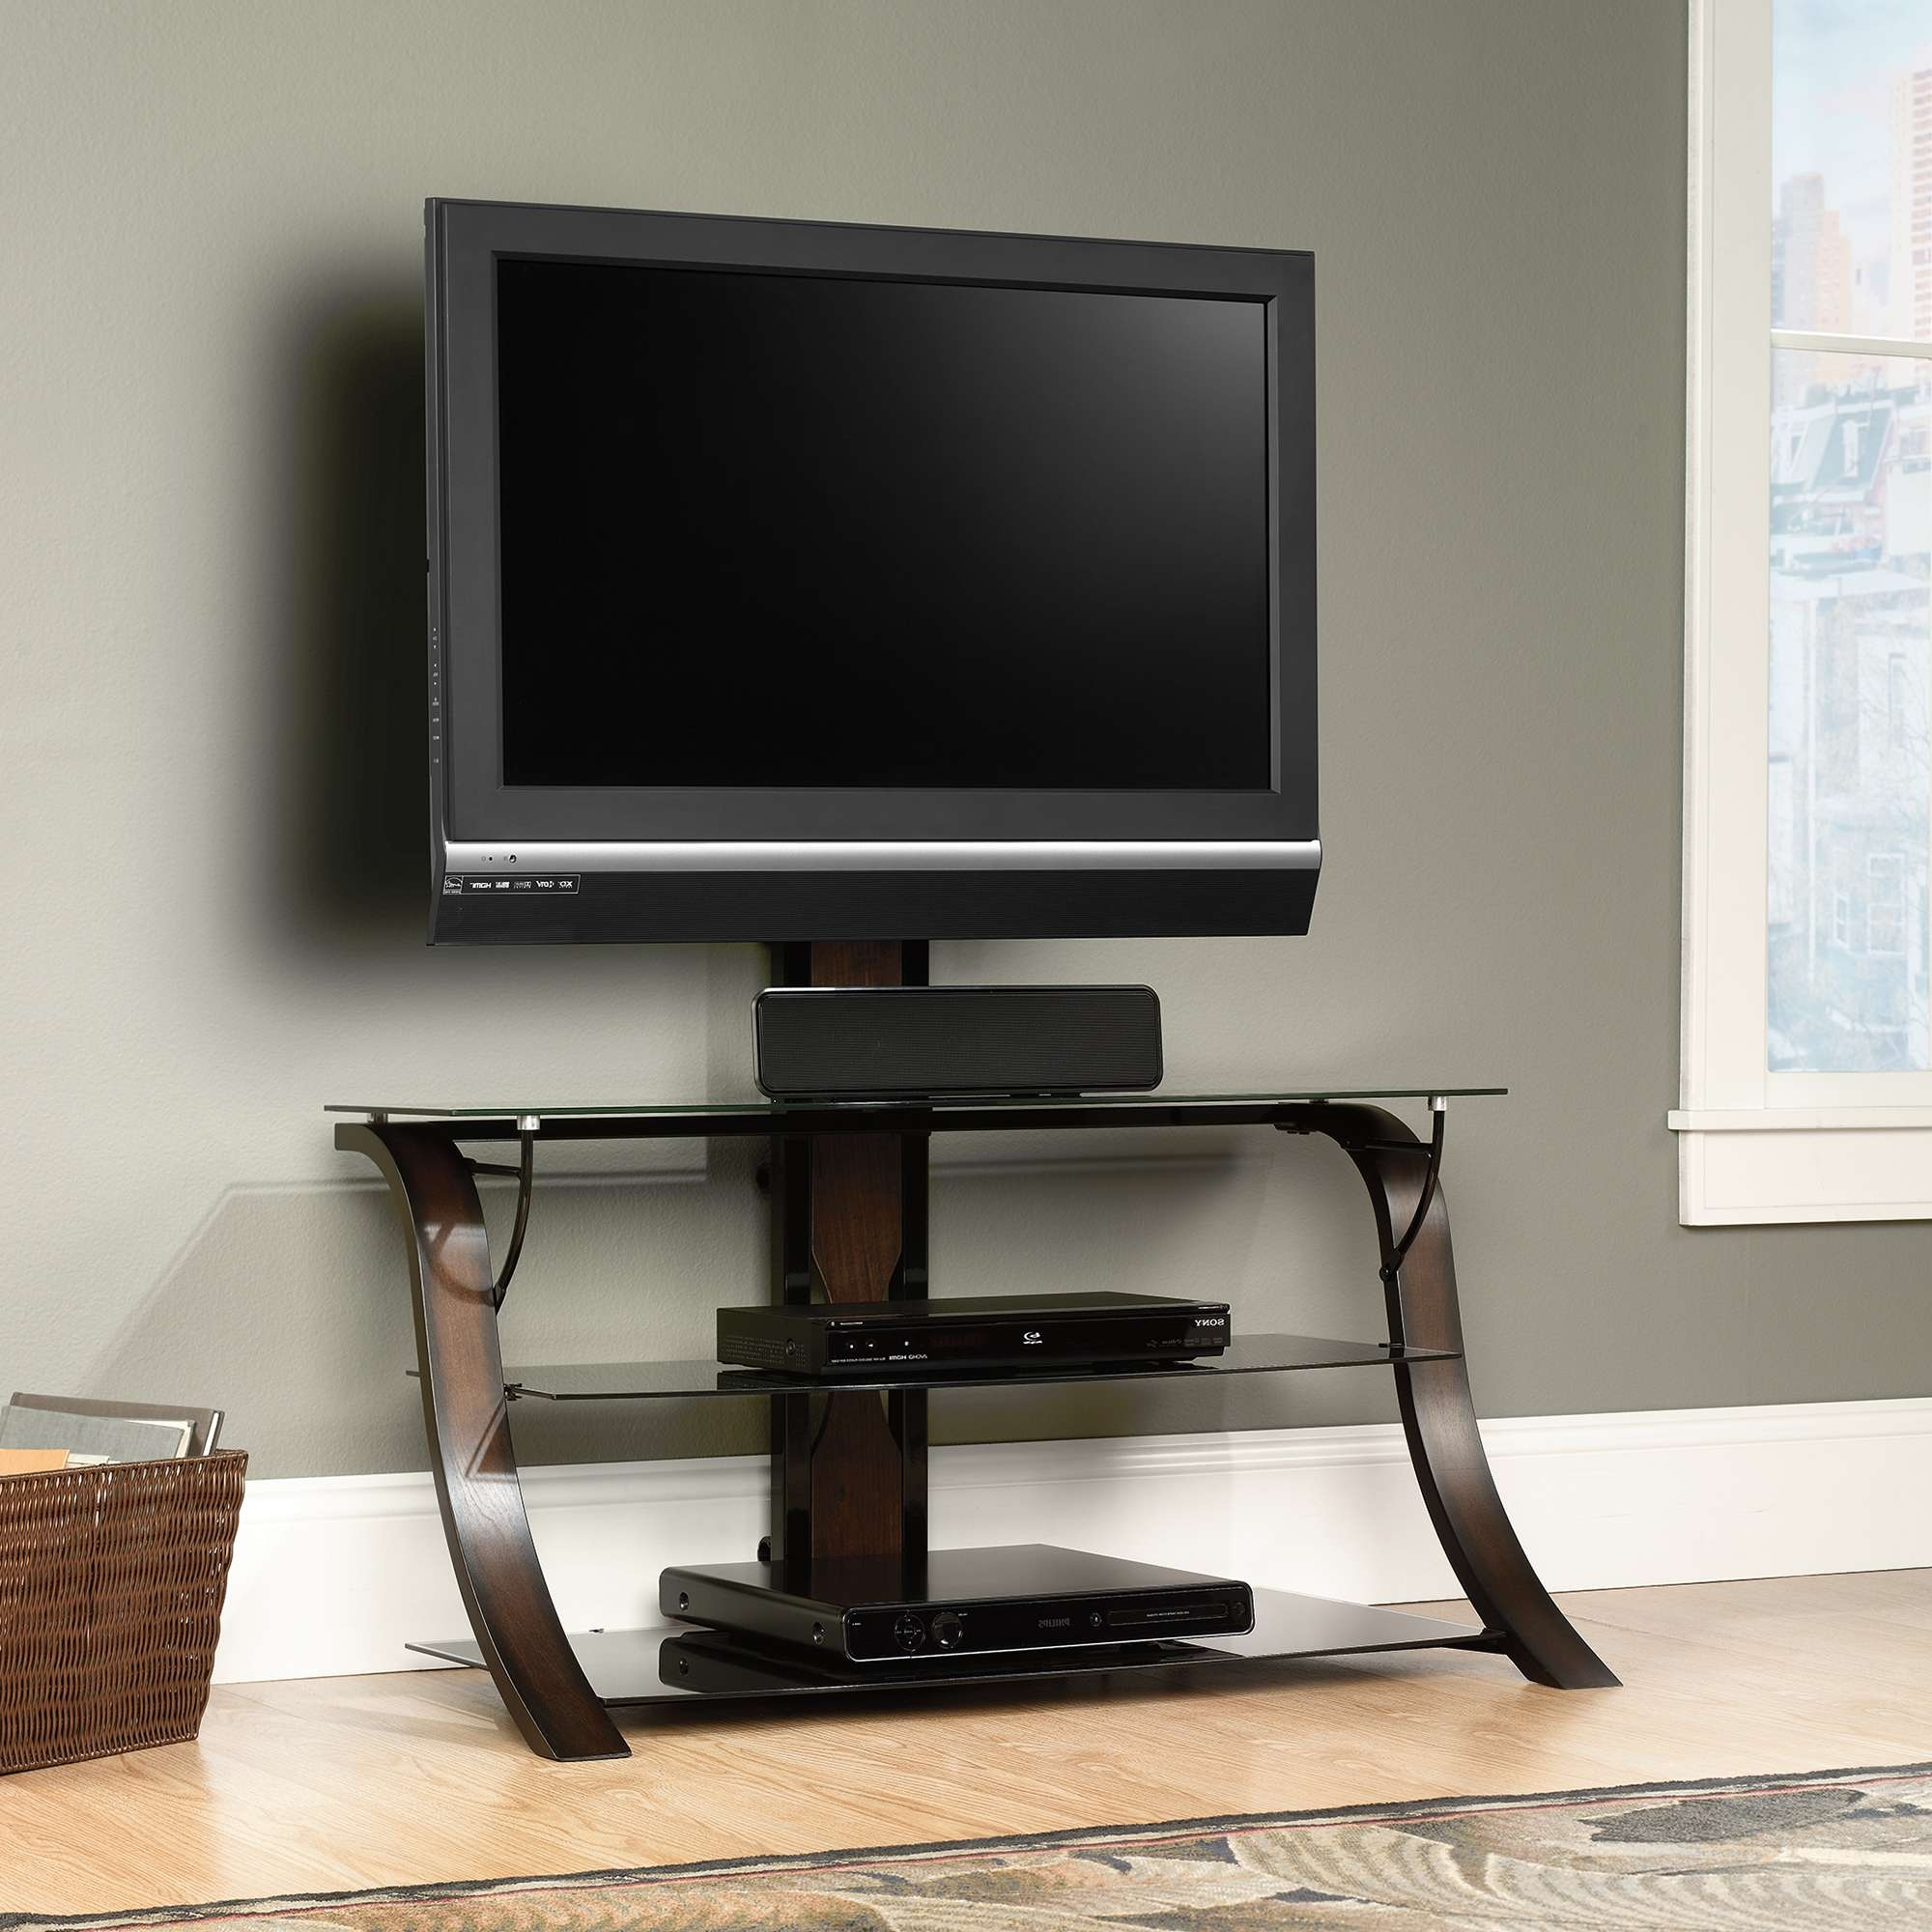 Wood Tv Stand Withnt Furnitures Flat Screen Standsntswoodnts For Intended For Swivel Tv Stands With Mount (View 15 of 15)